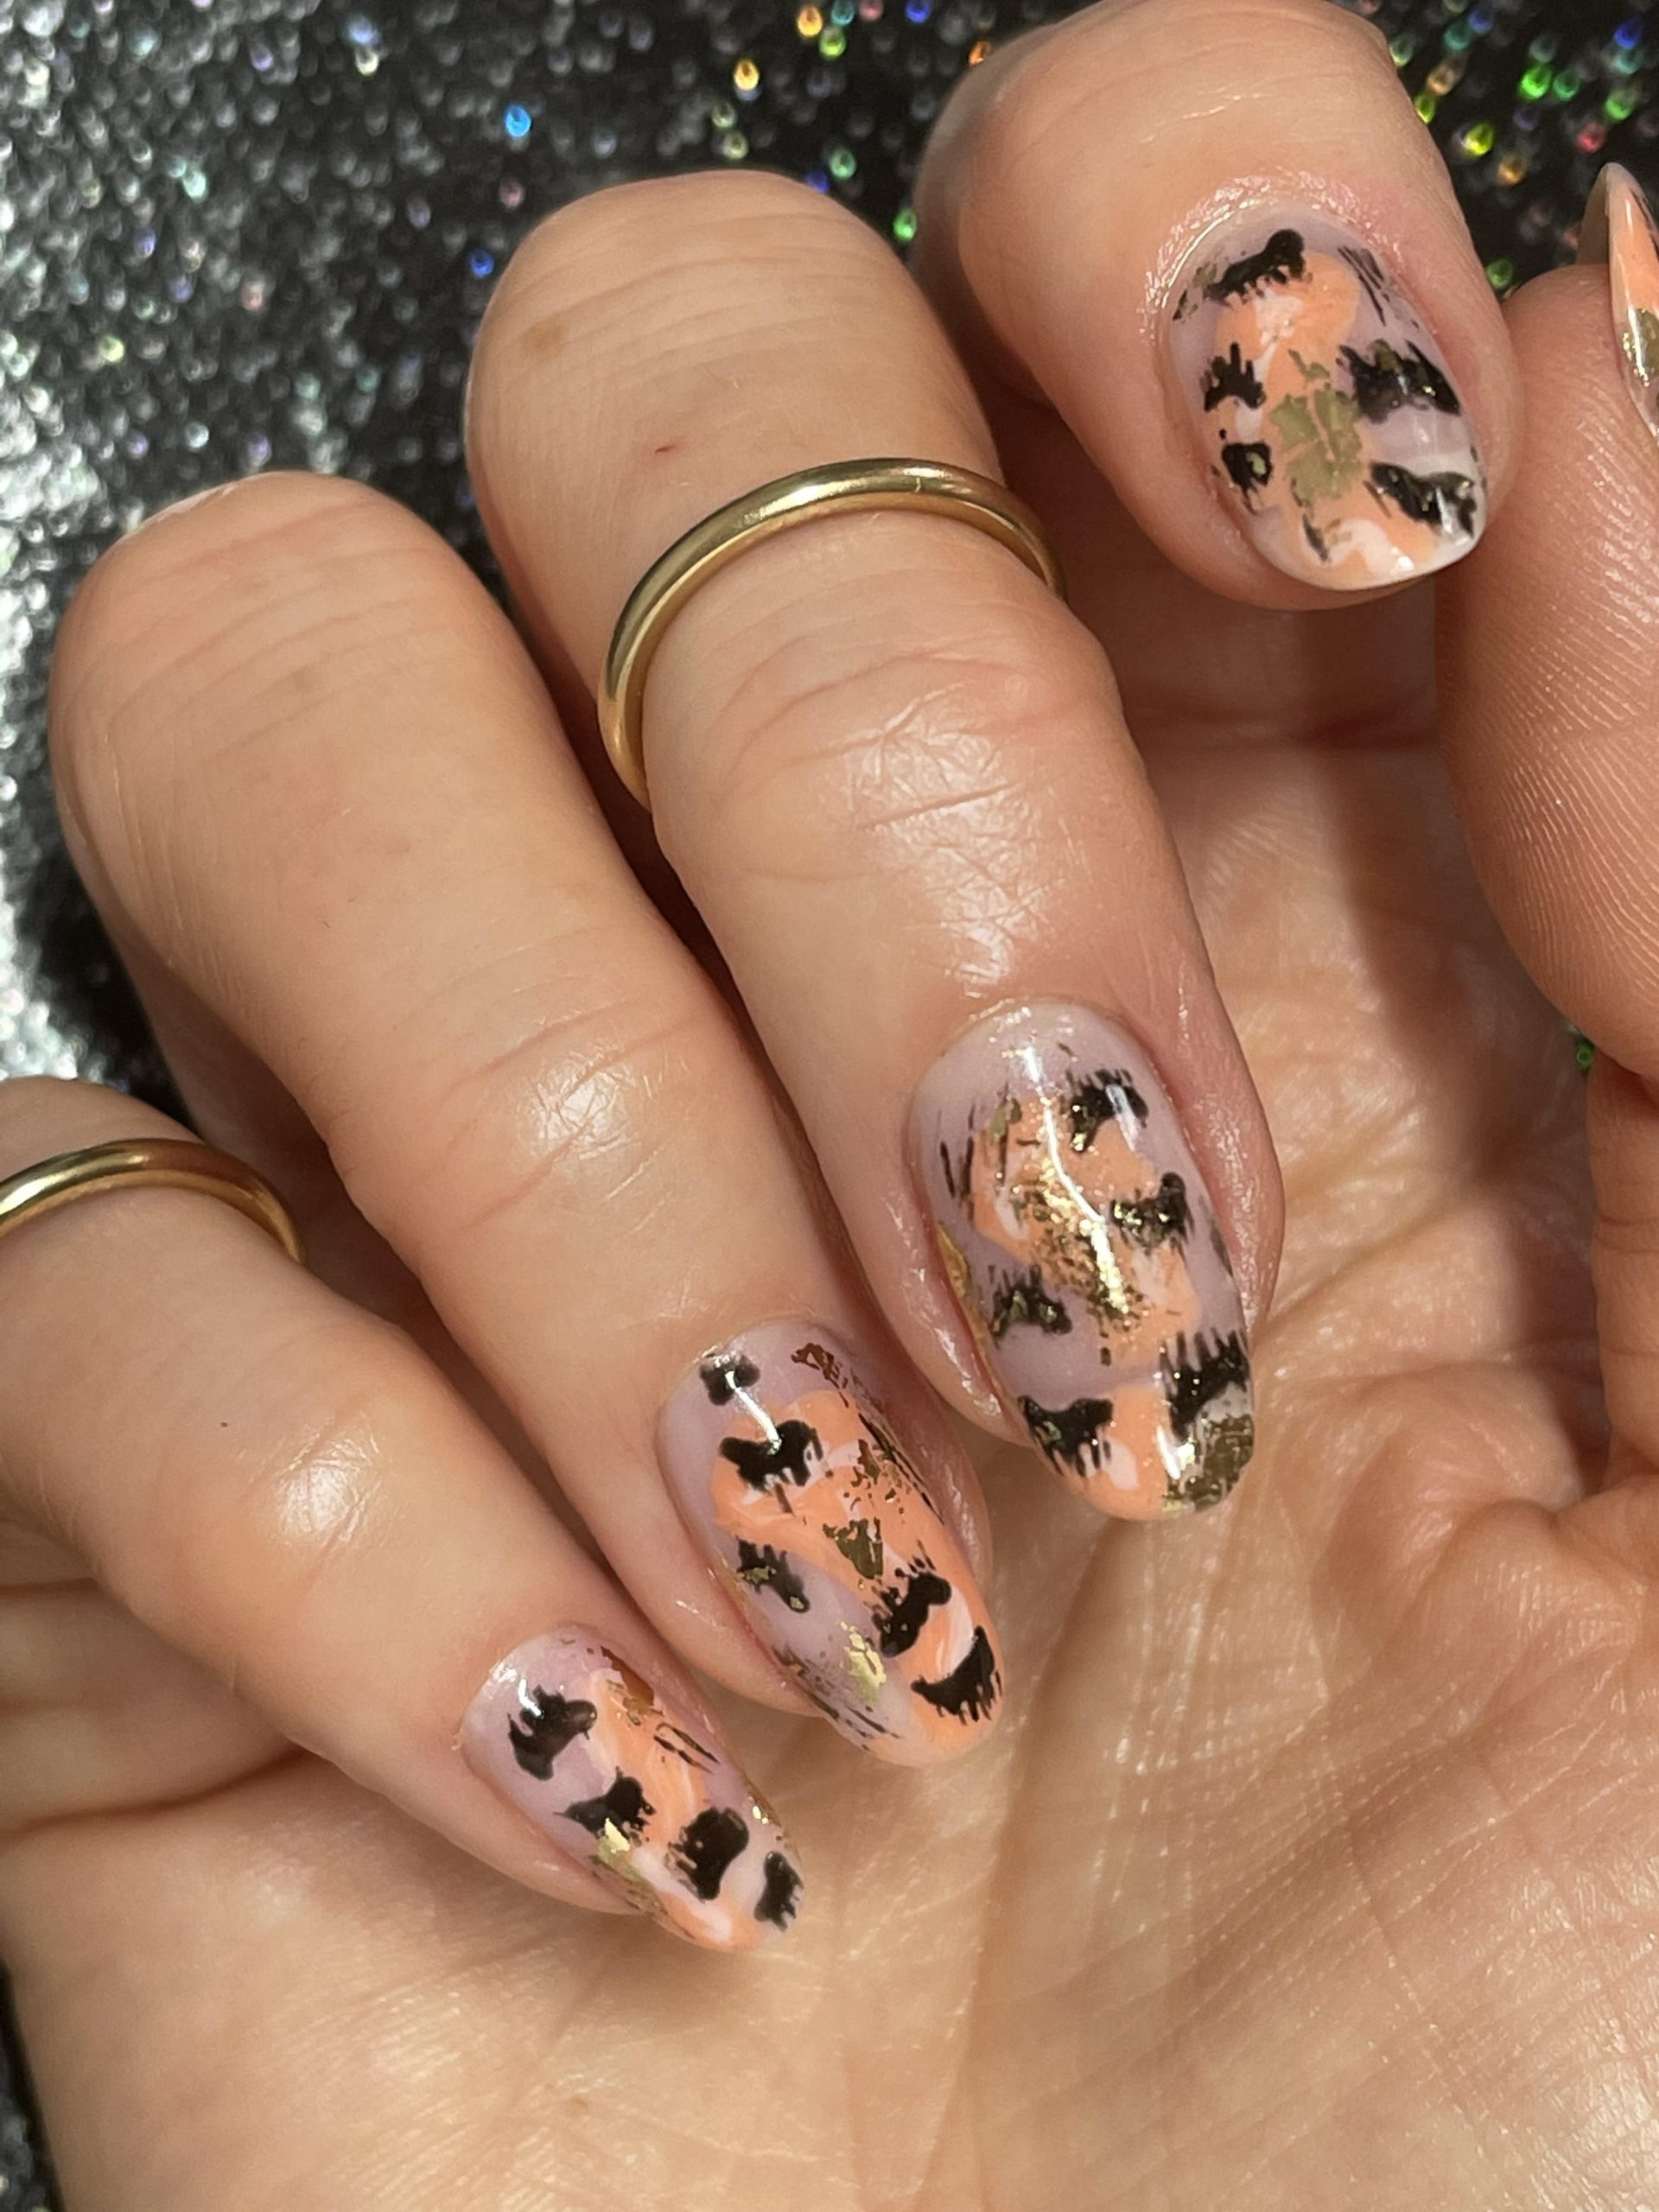 alternative animal print, abstract nails,CND Shellac, nail art, nail pro, nail artist, nail technician, gel nails, shellac nails, acrylic nails, ware, mobile